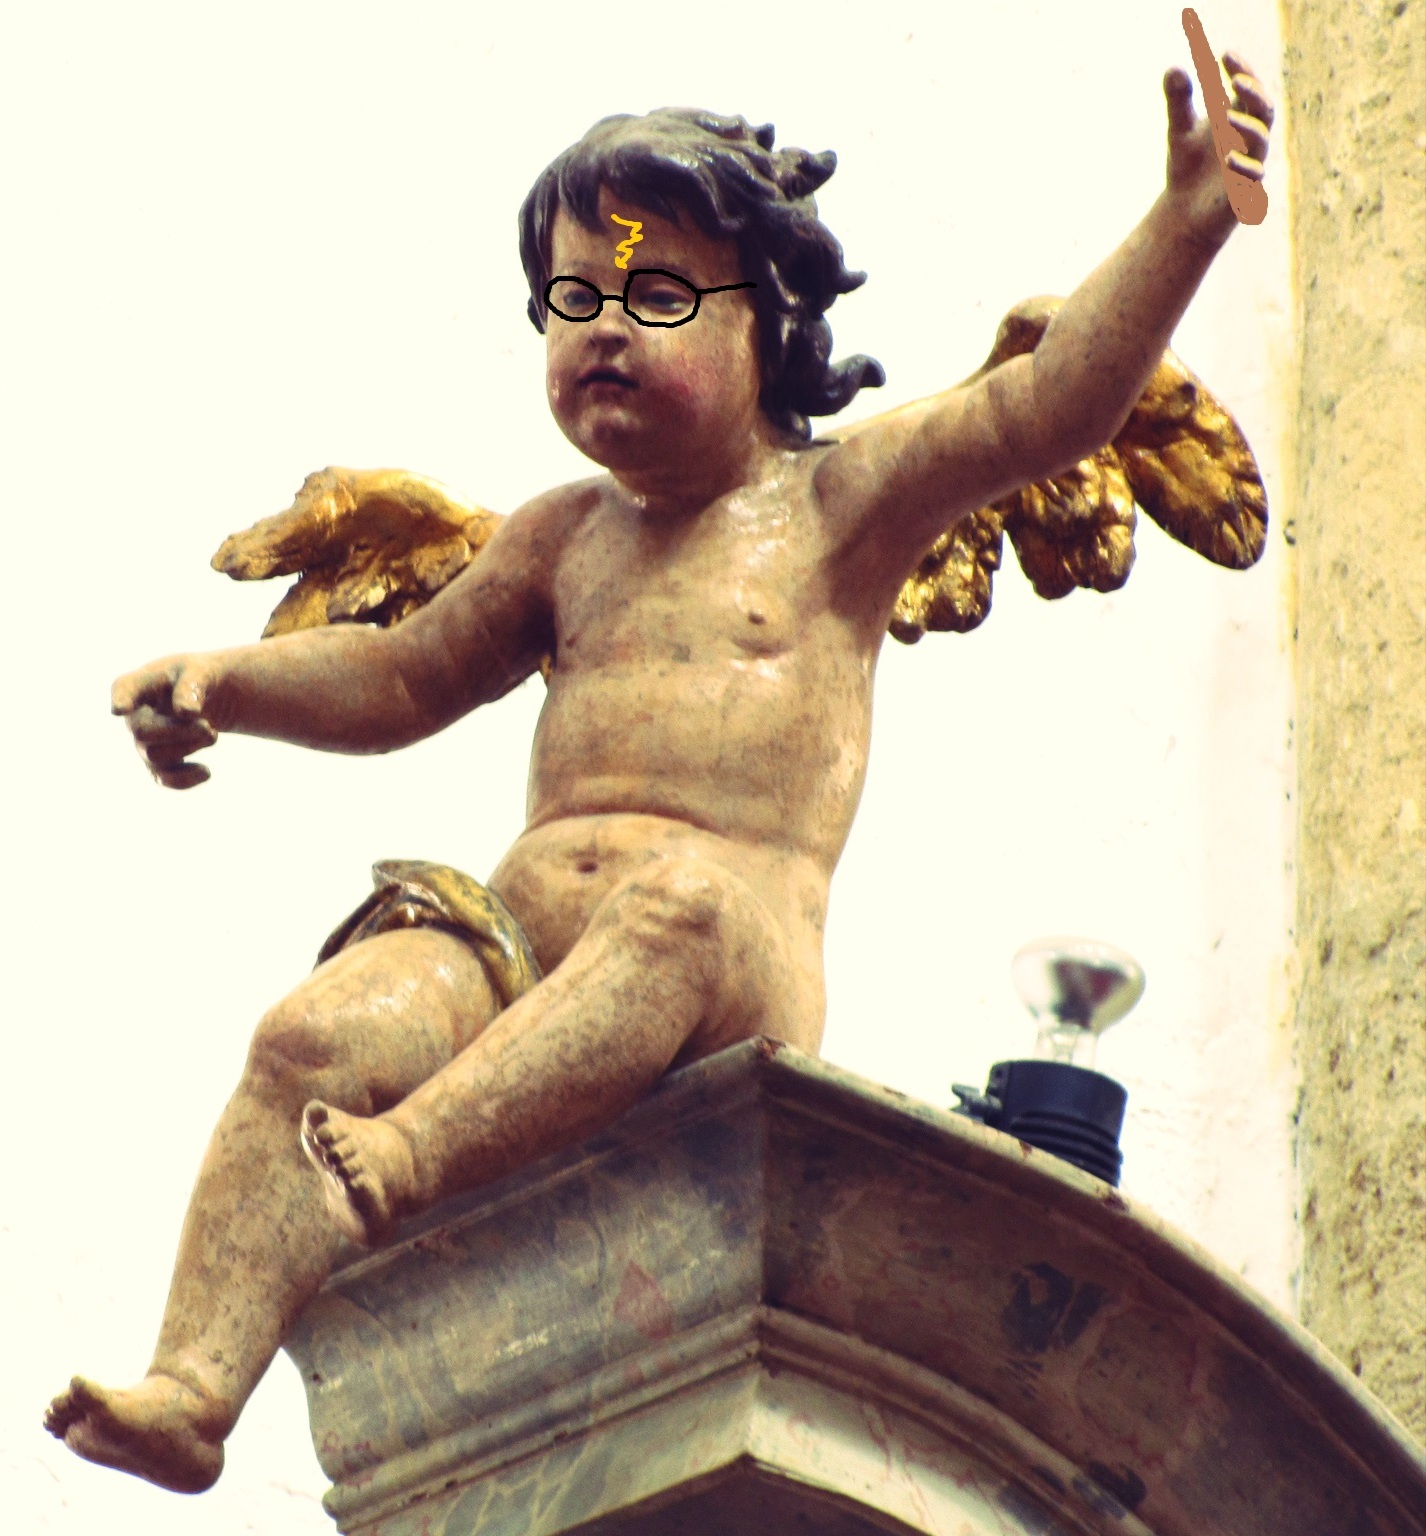 Angel_statue_in_Ptuj.jpg